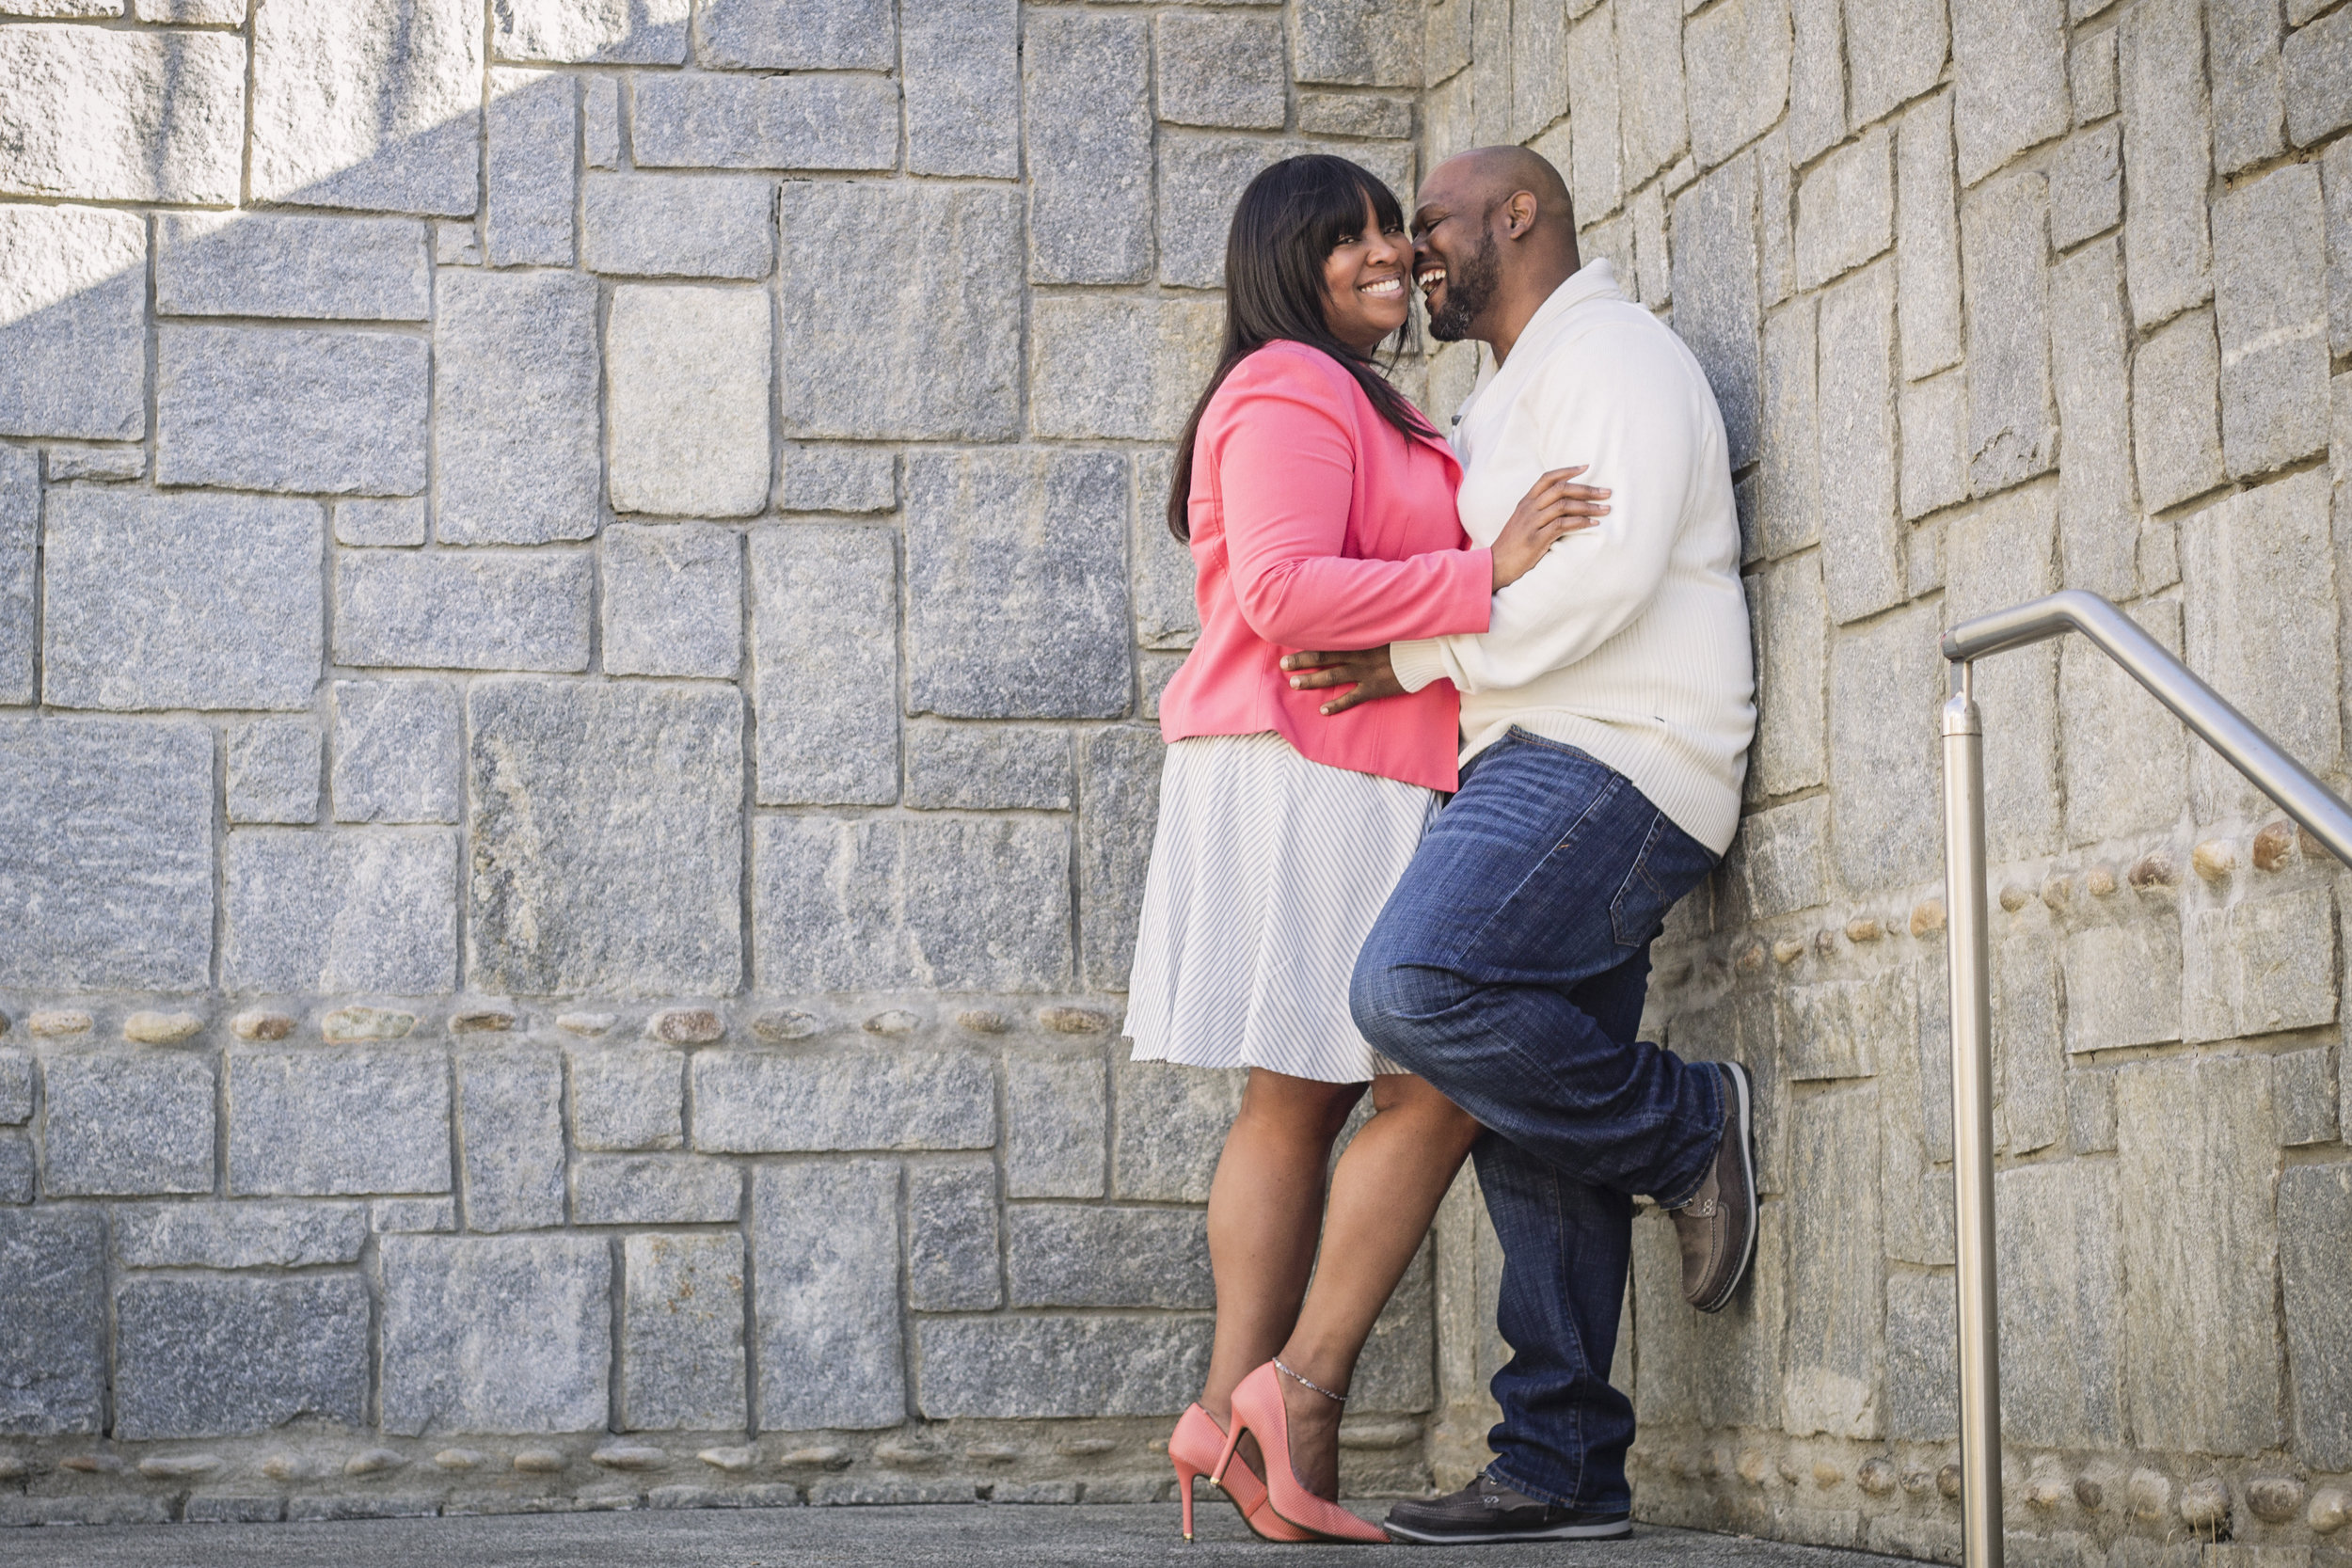 Historic-Fourth-Wark-Park-engagement-session-for-young-black-couple-by-Atlanta-photographer-Chanel-French